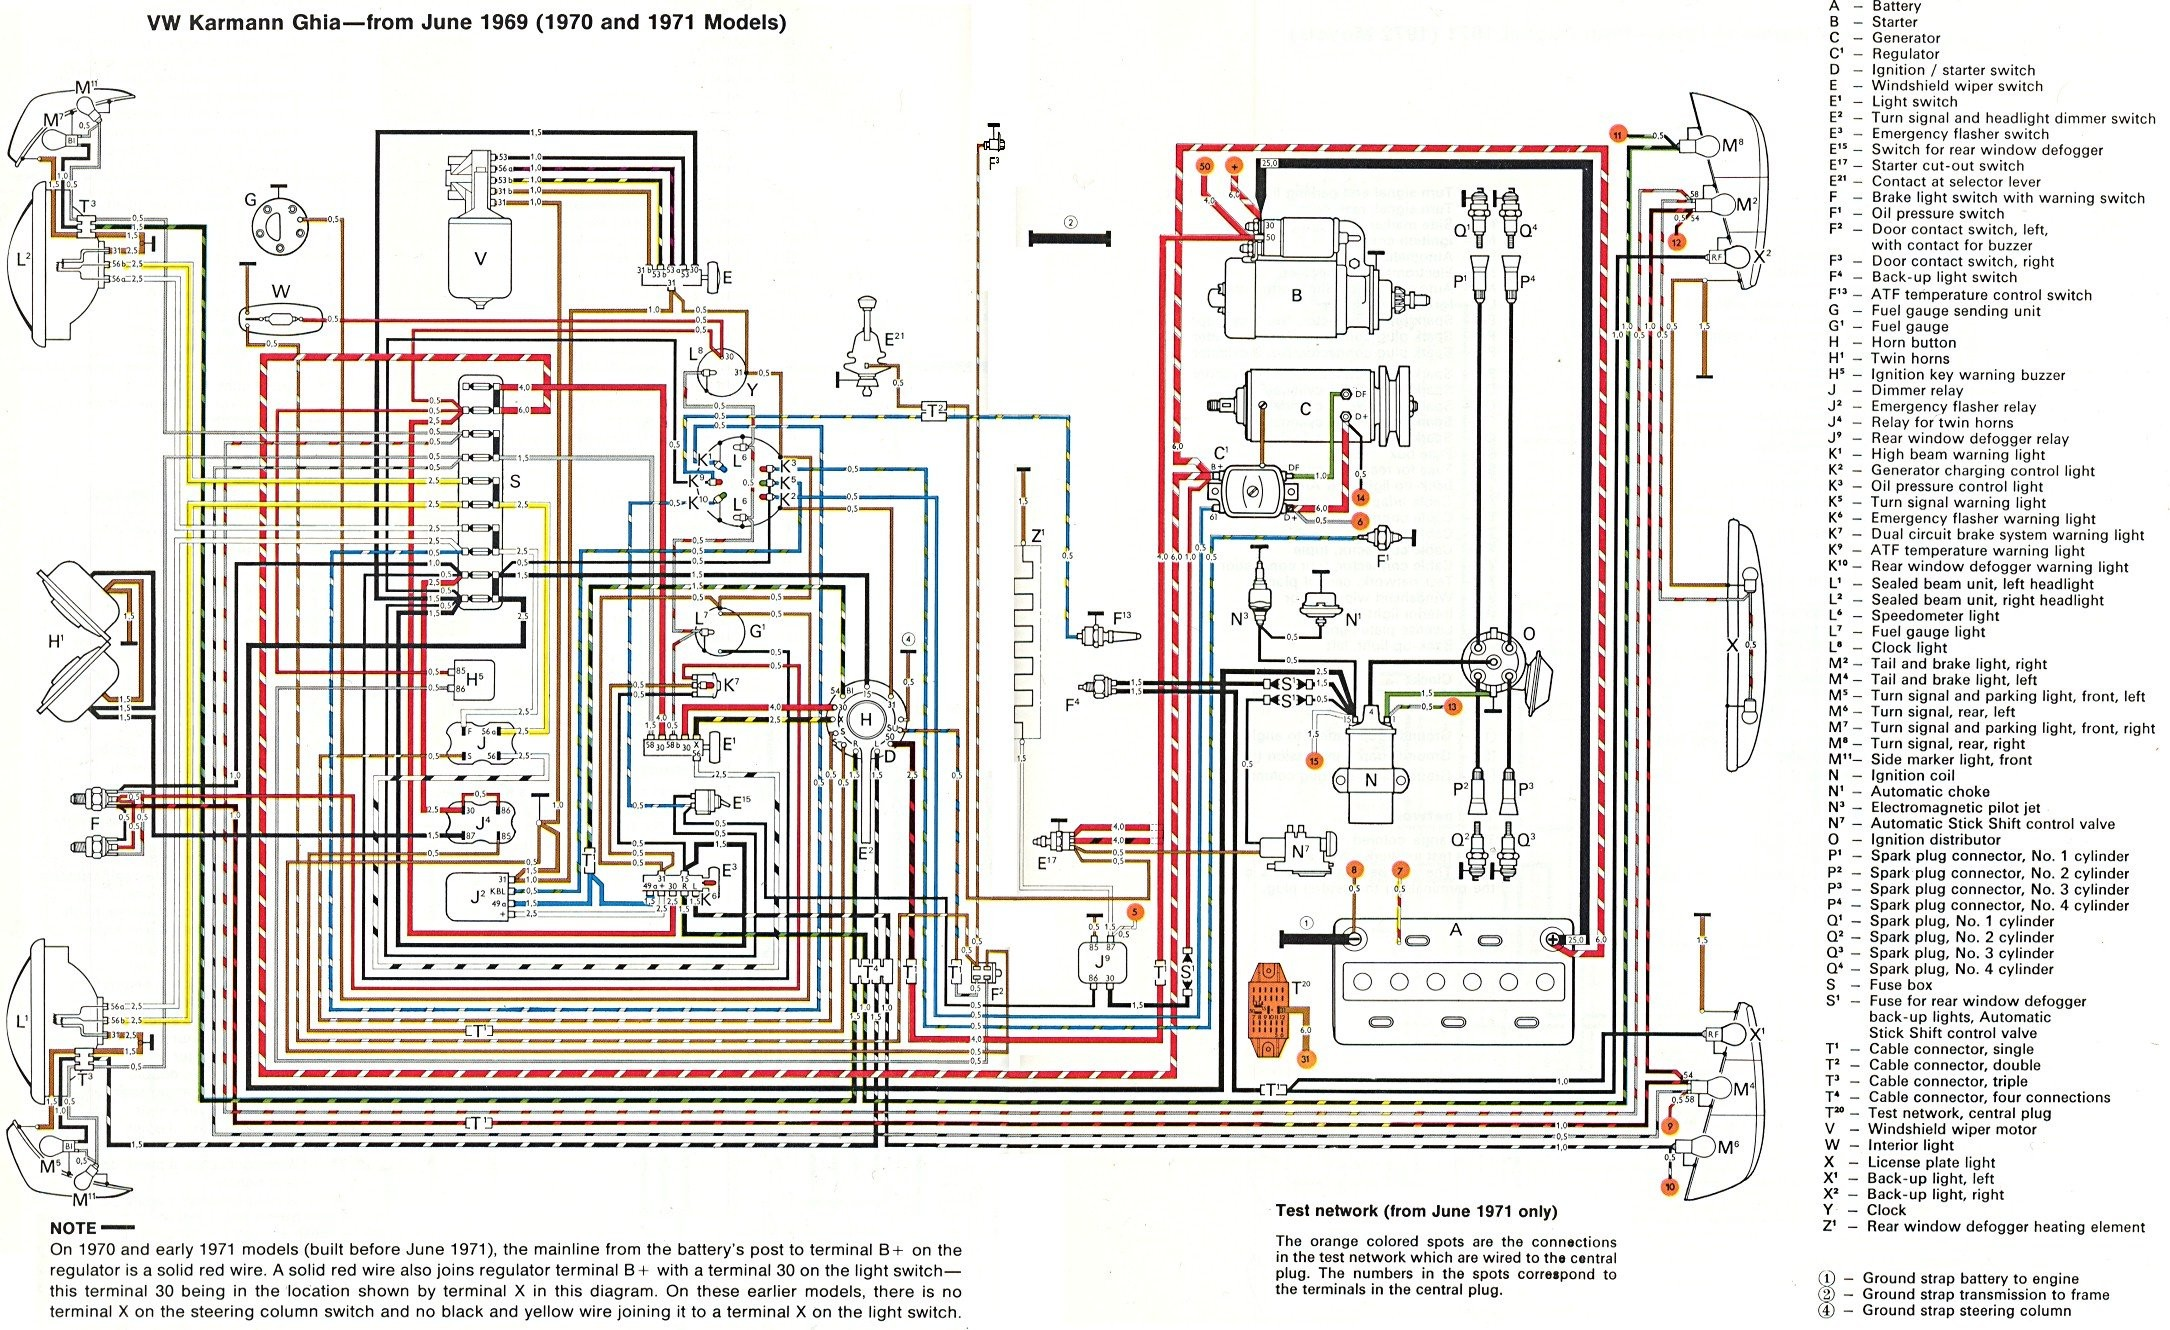 1967 Camaro Wiring Diagram Awesome 1979 Schematic 74 Firebird Free Download Of